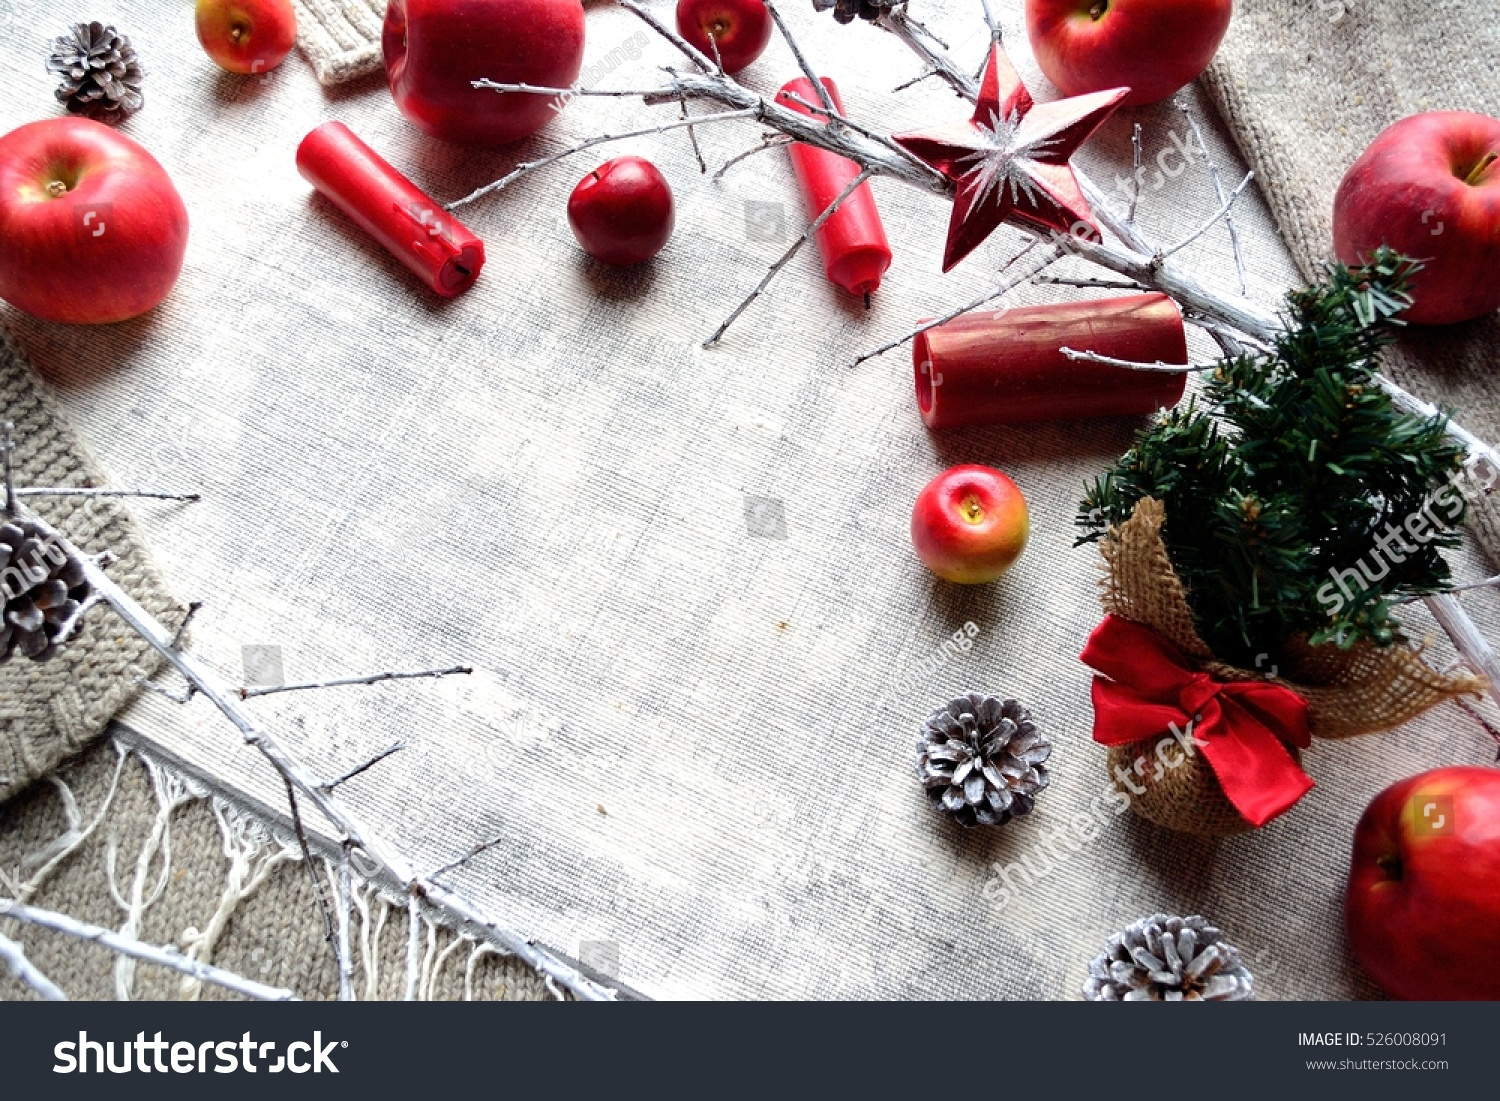 Red Ribbon Christmas Tree,Apples And Candle Sticks.Gray